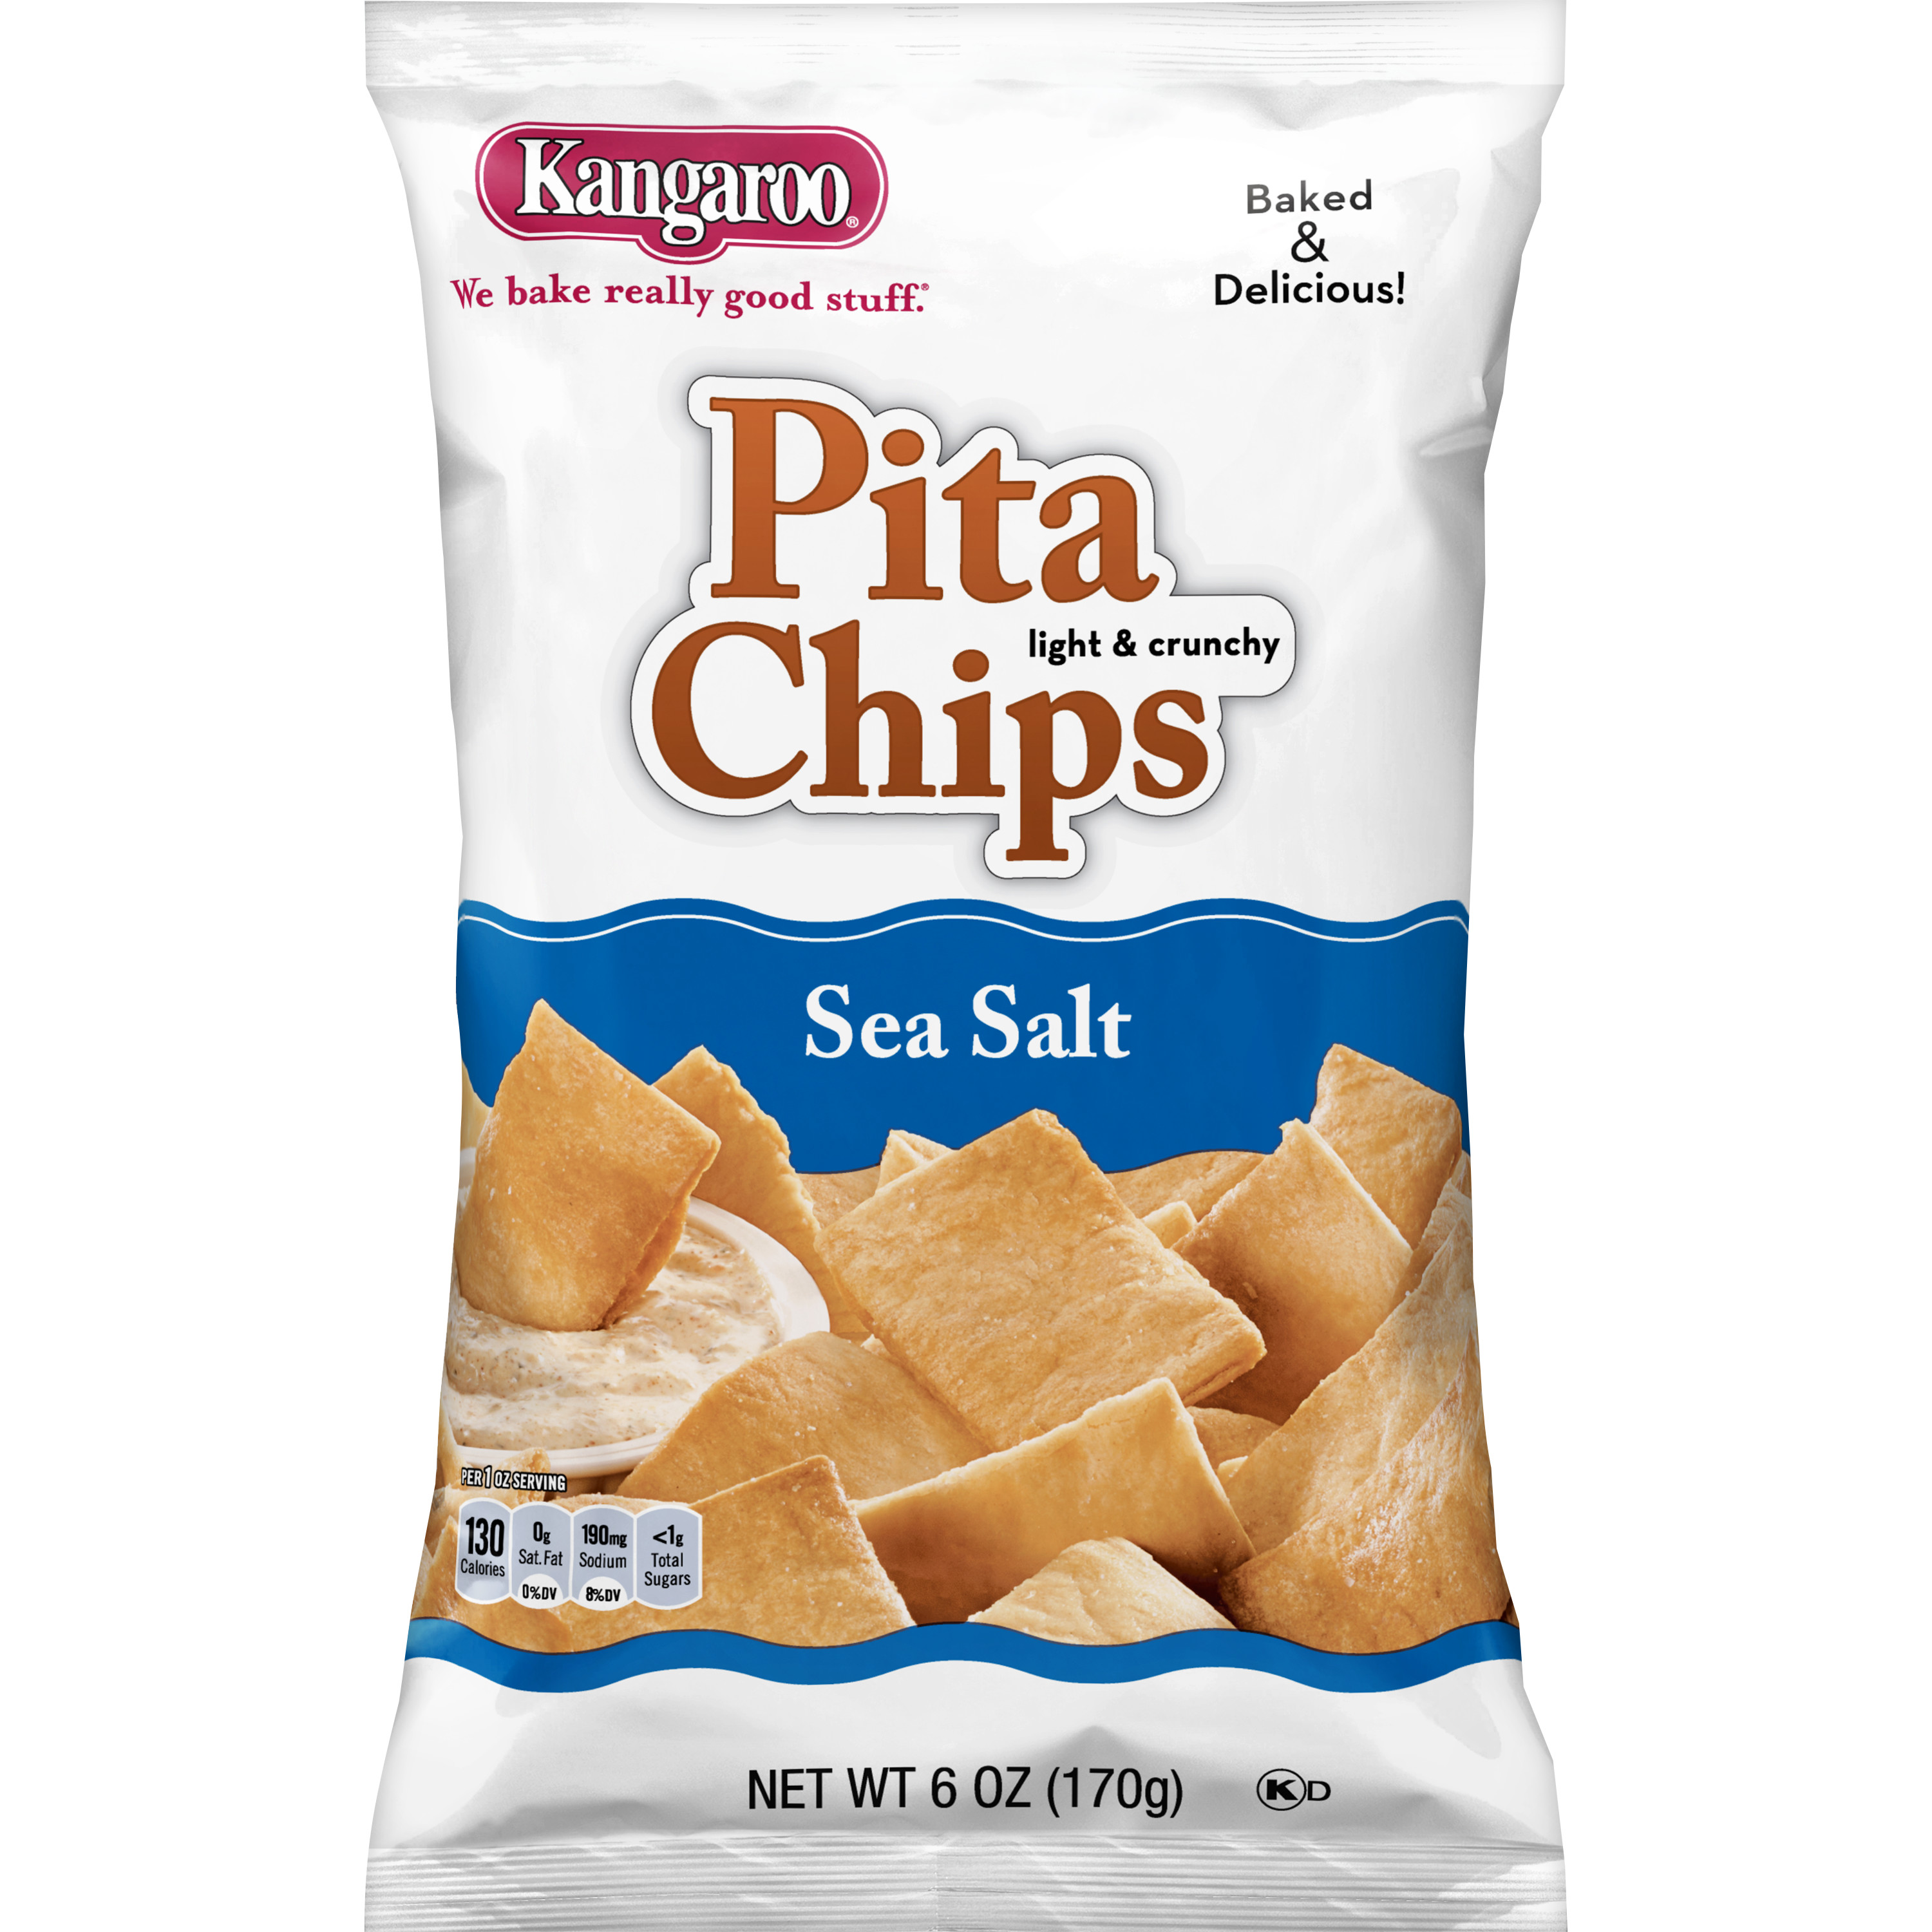 KANGAROO Sea Salt Pita Chips